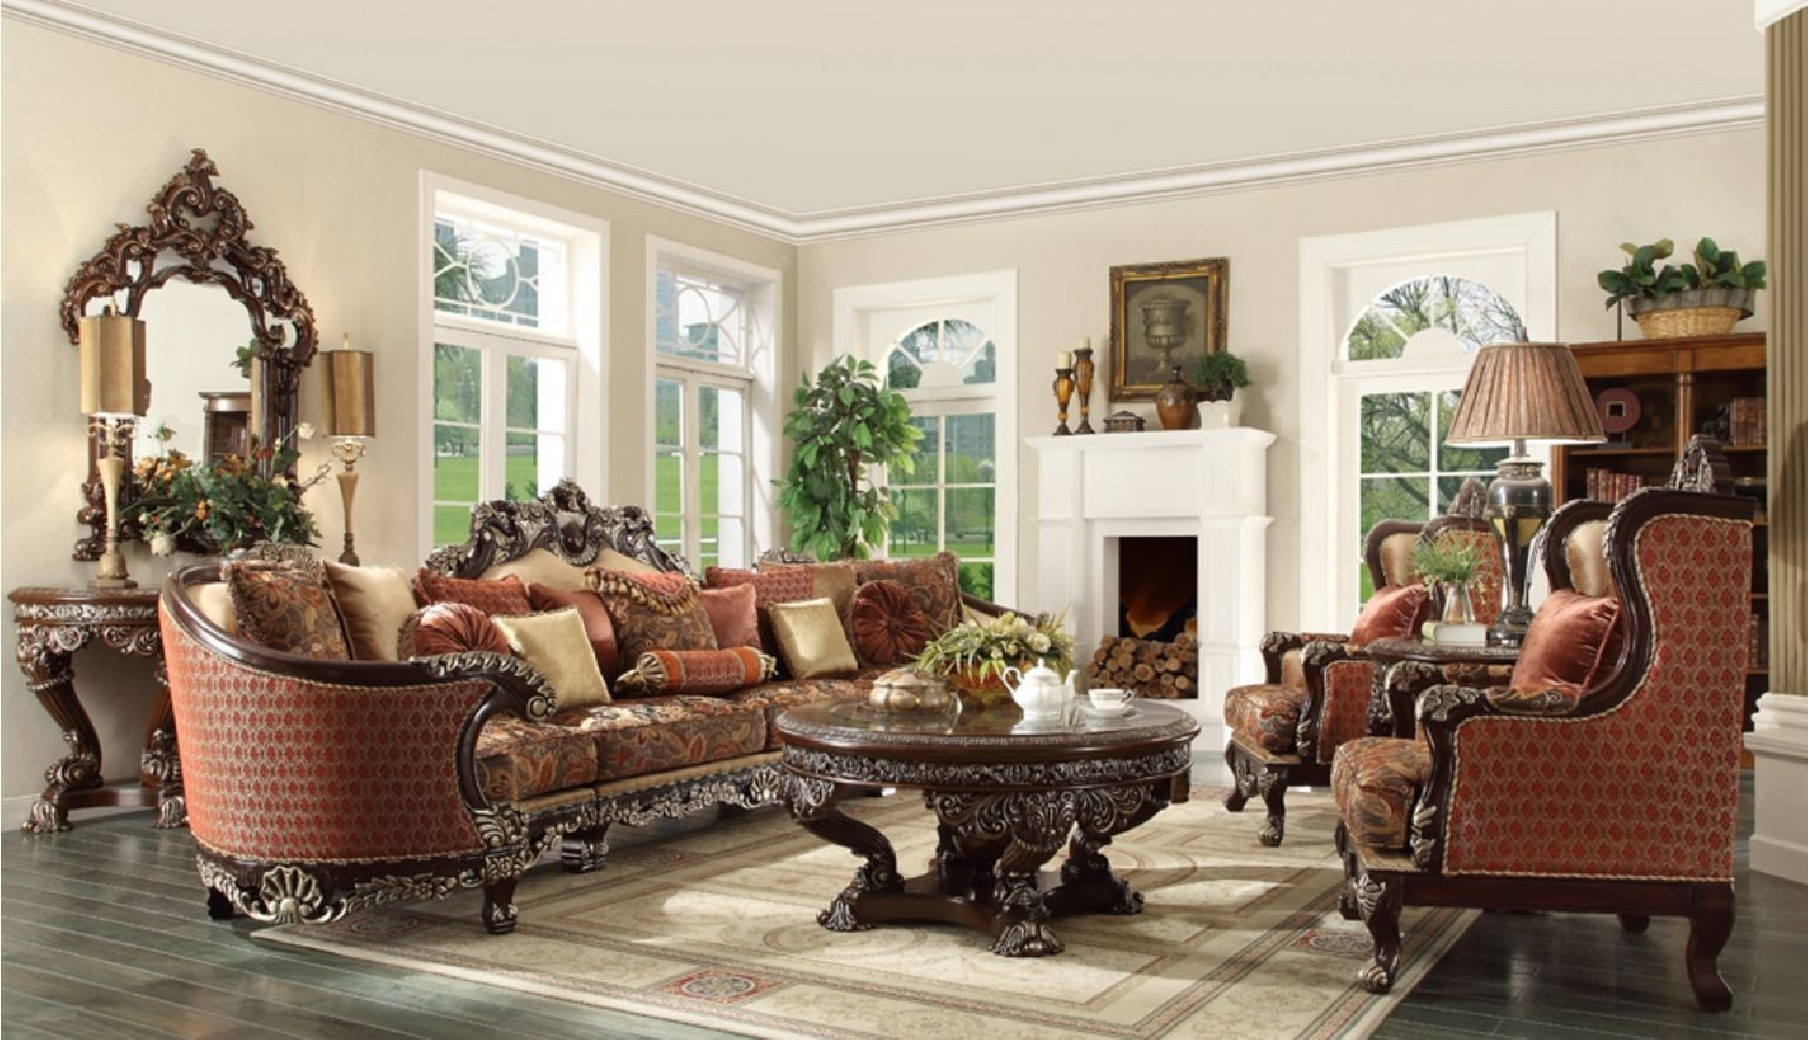 Hd 111 homey design upholstery living room set victorian - European style living room furniture ...